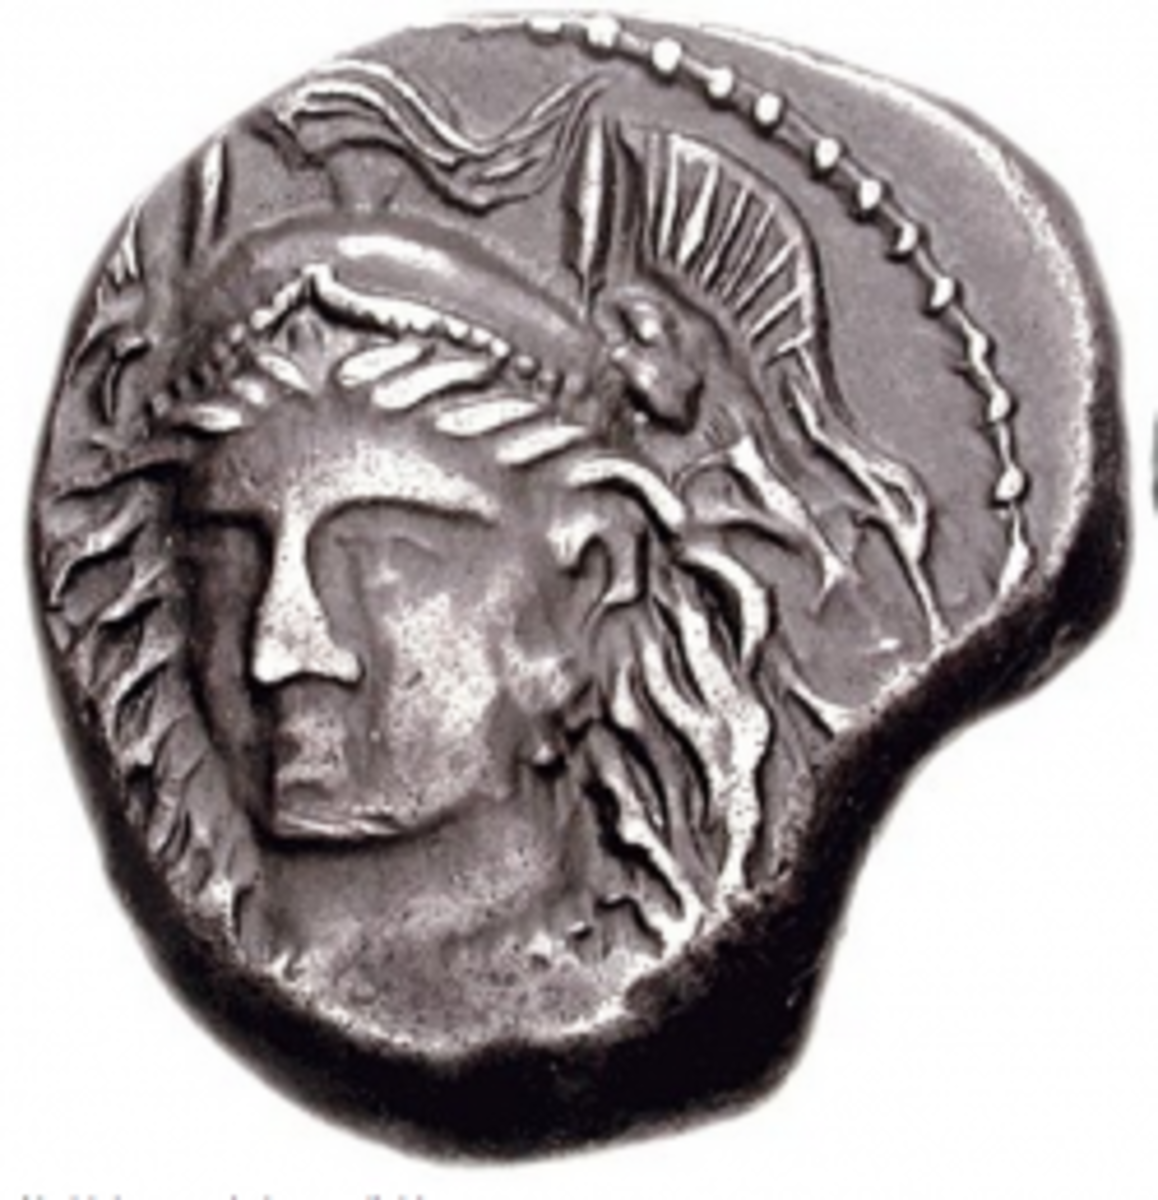 Goddess Menrva (Roman Coin from area formerly ruled by Etruscans)